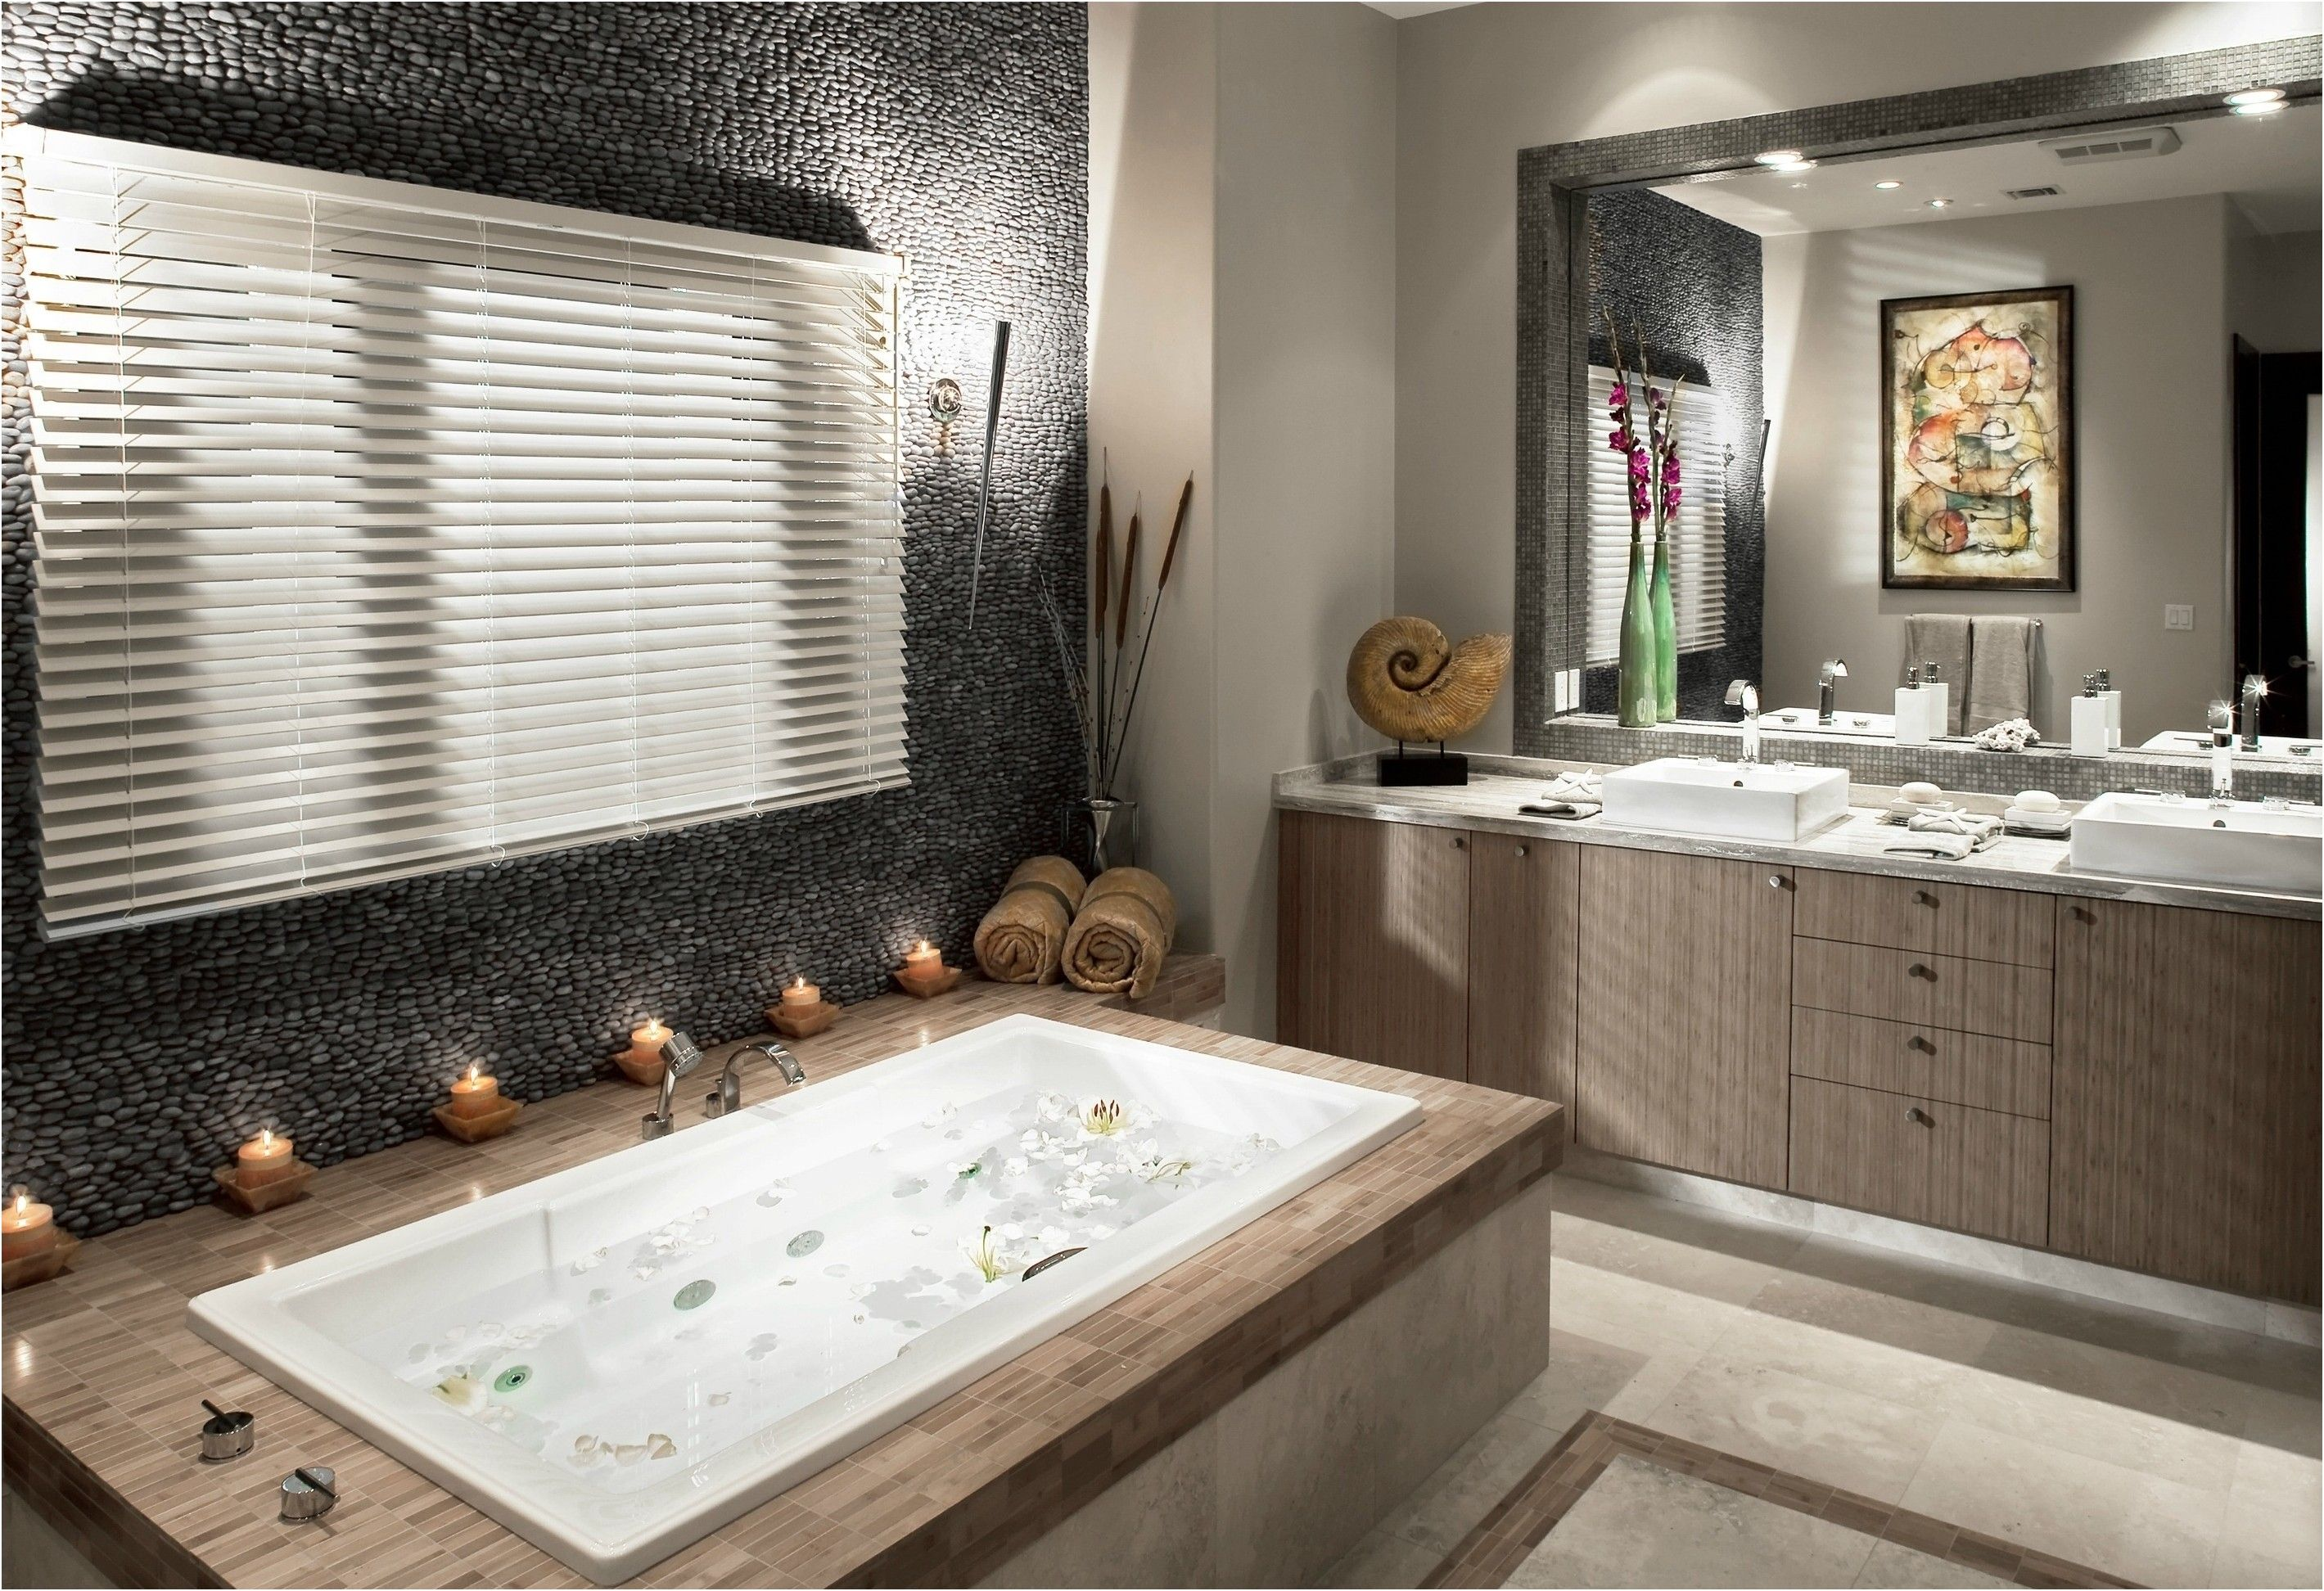 Bathroom Tile Design Tool Pleasing Virtual Bathroom Design Tool Free Tomthetrader With Photo Of From Design Inspiration